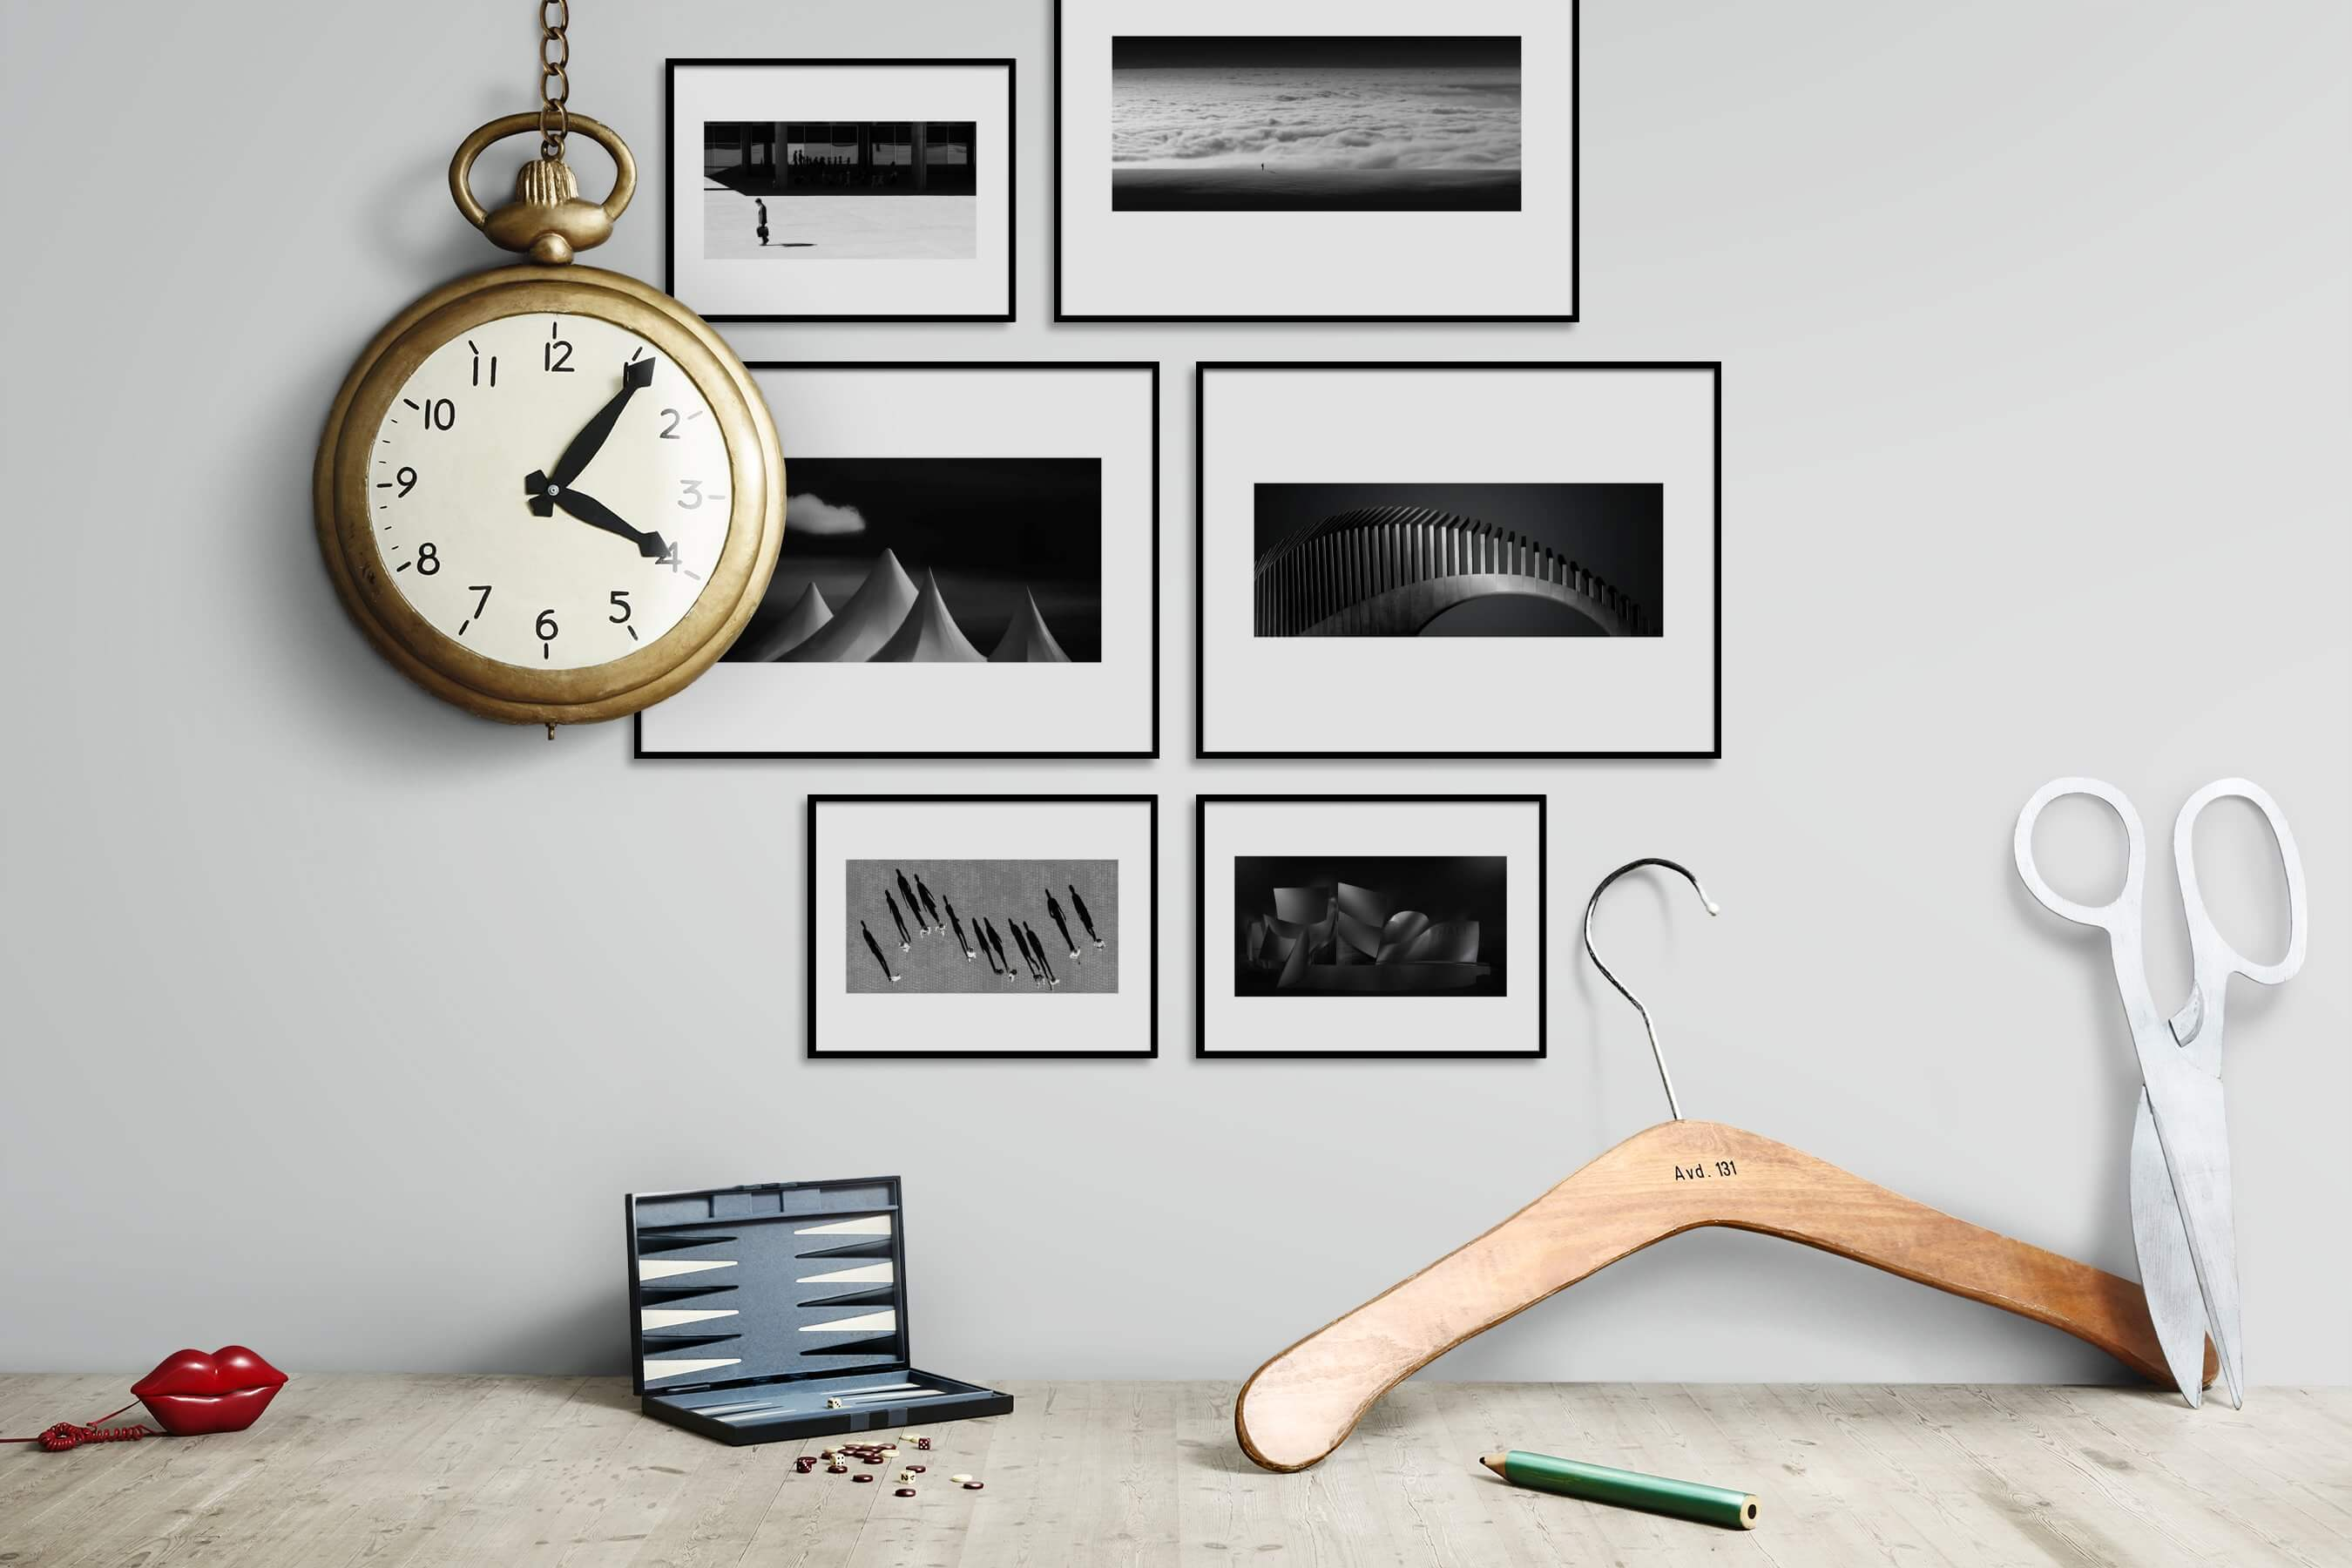 Gallery wall idea with six framed pictures arranged on a wall depicting Black & White, For the Minimalist, City Life, Nature, Mindfulness, For the Moderate, and Americana